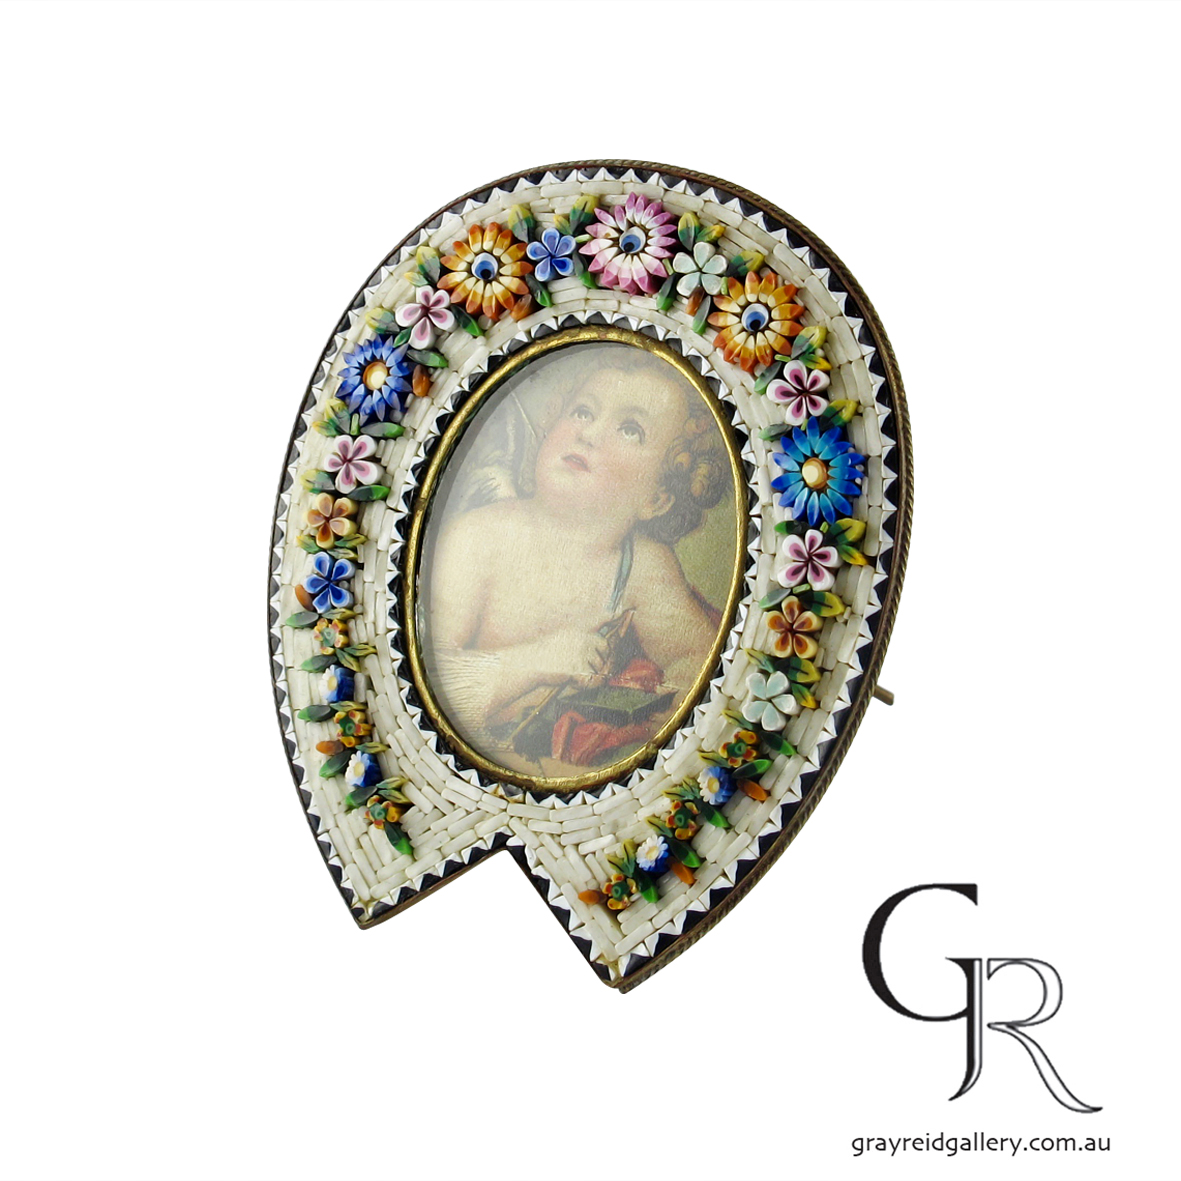 antiques and collectables melbourne micro mosaic picture frame Gray Reid Gallery 8.jpg